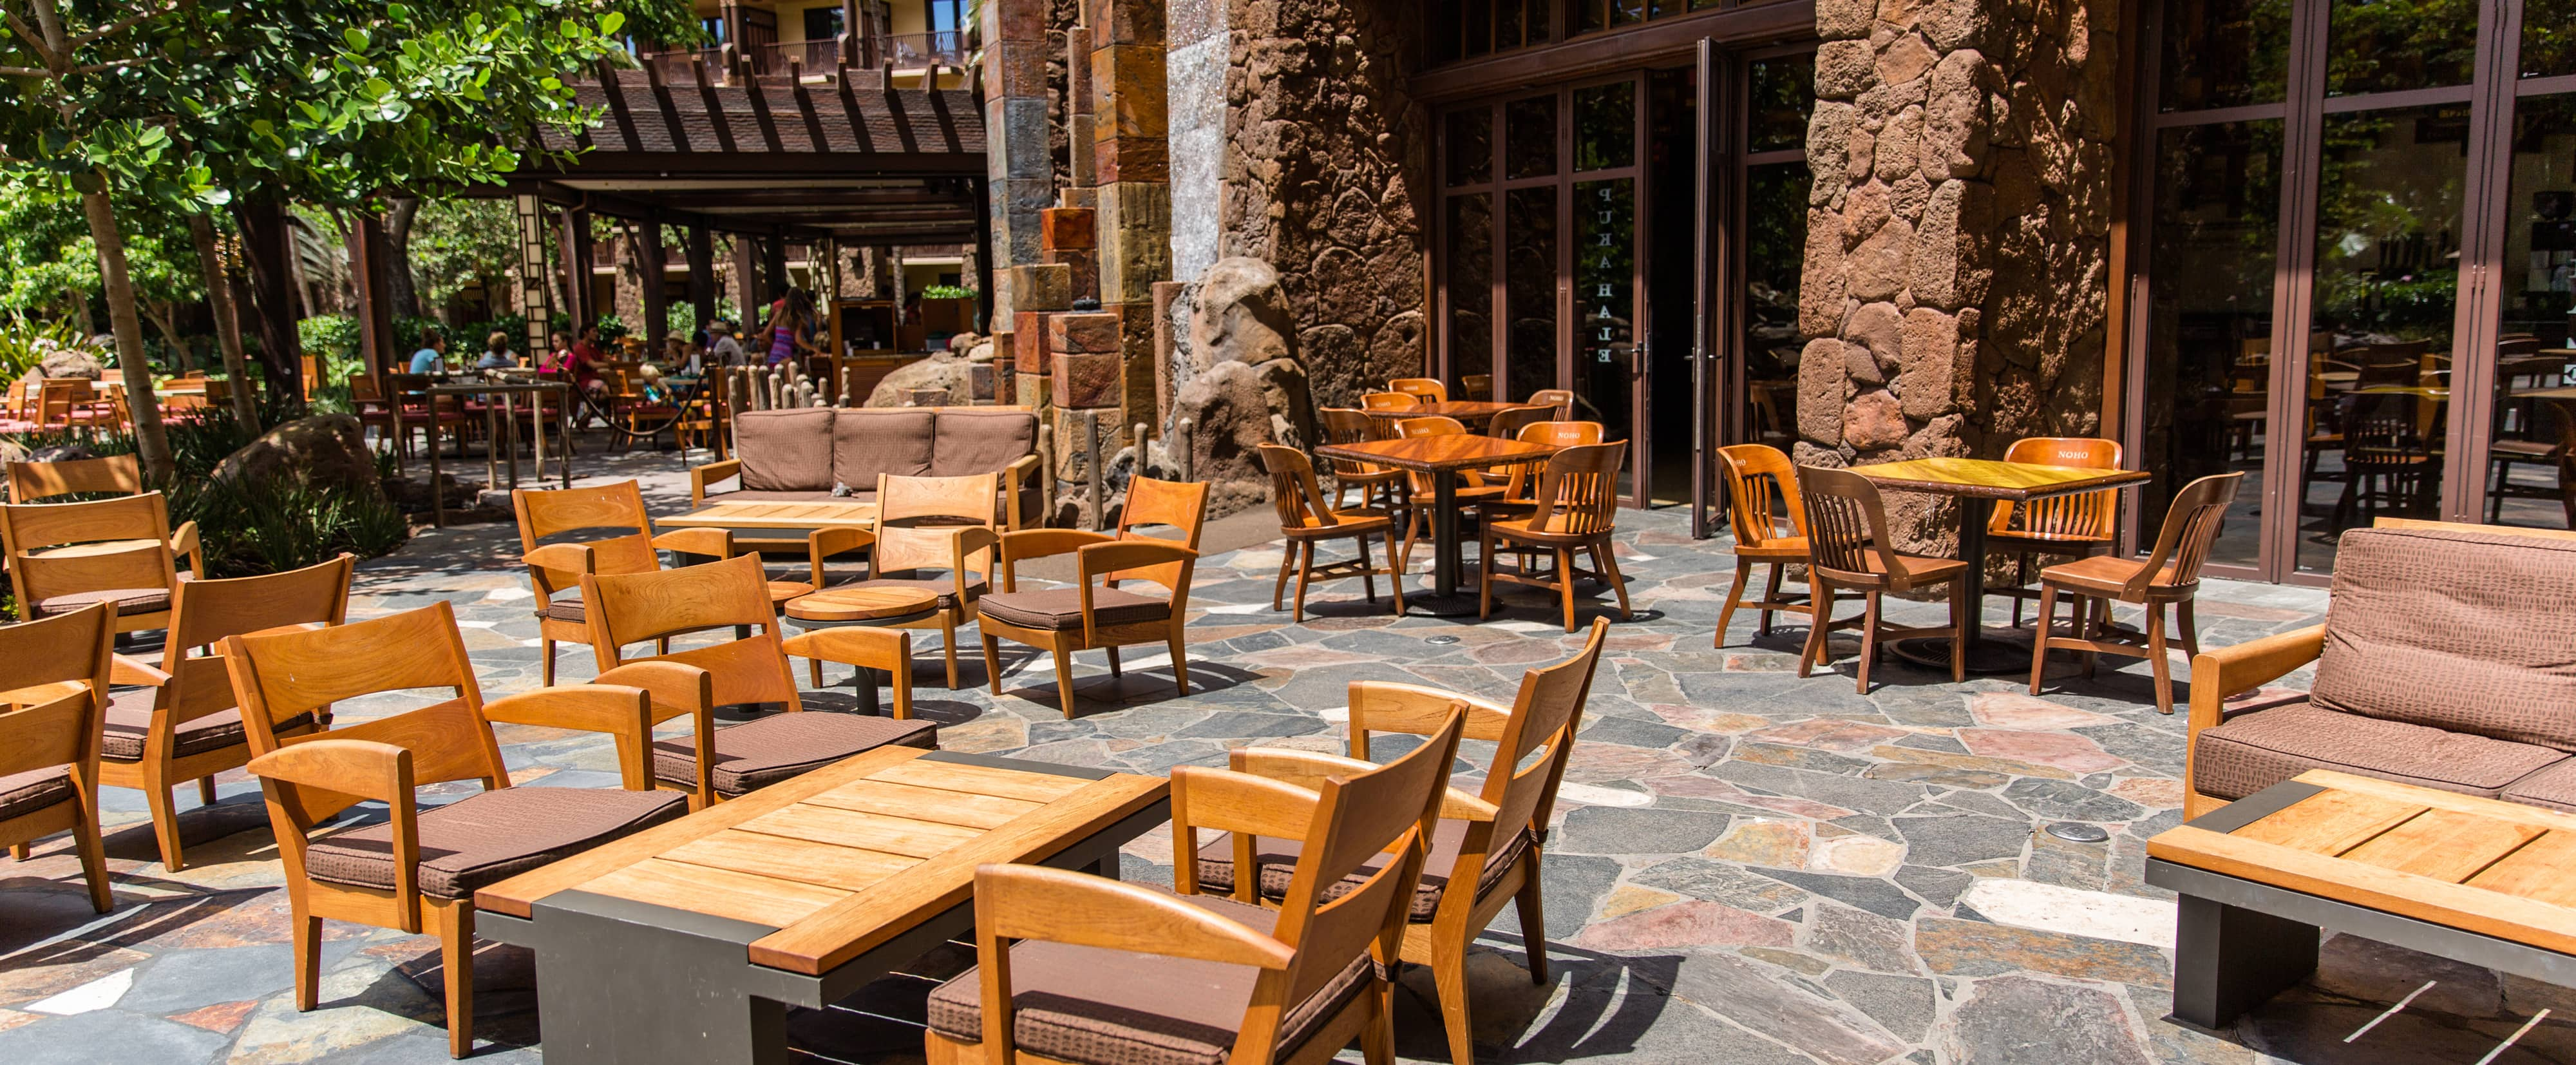 Outdoor tables and 2 couches on a flagstone paved patio